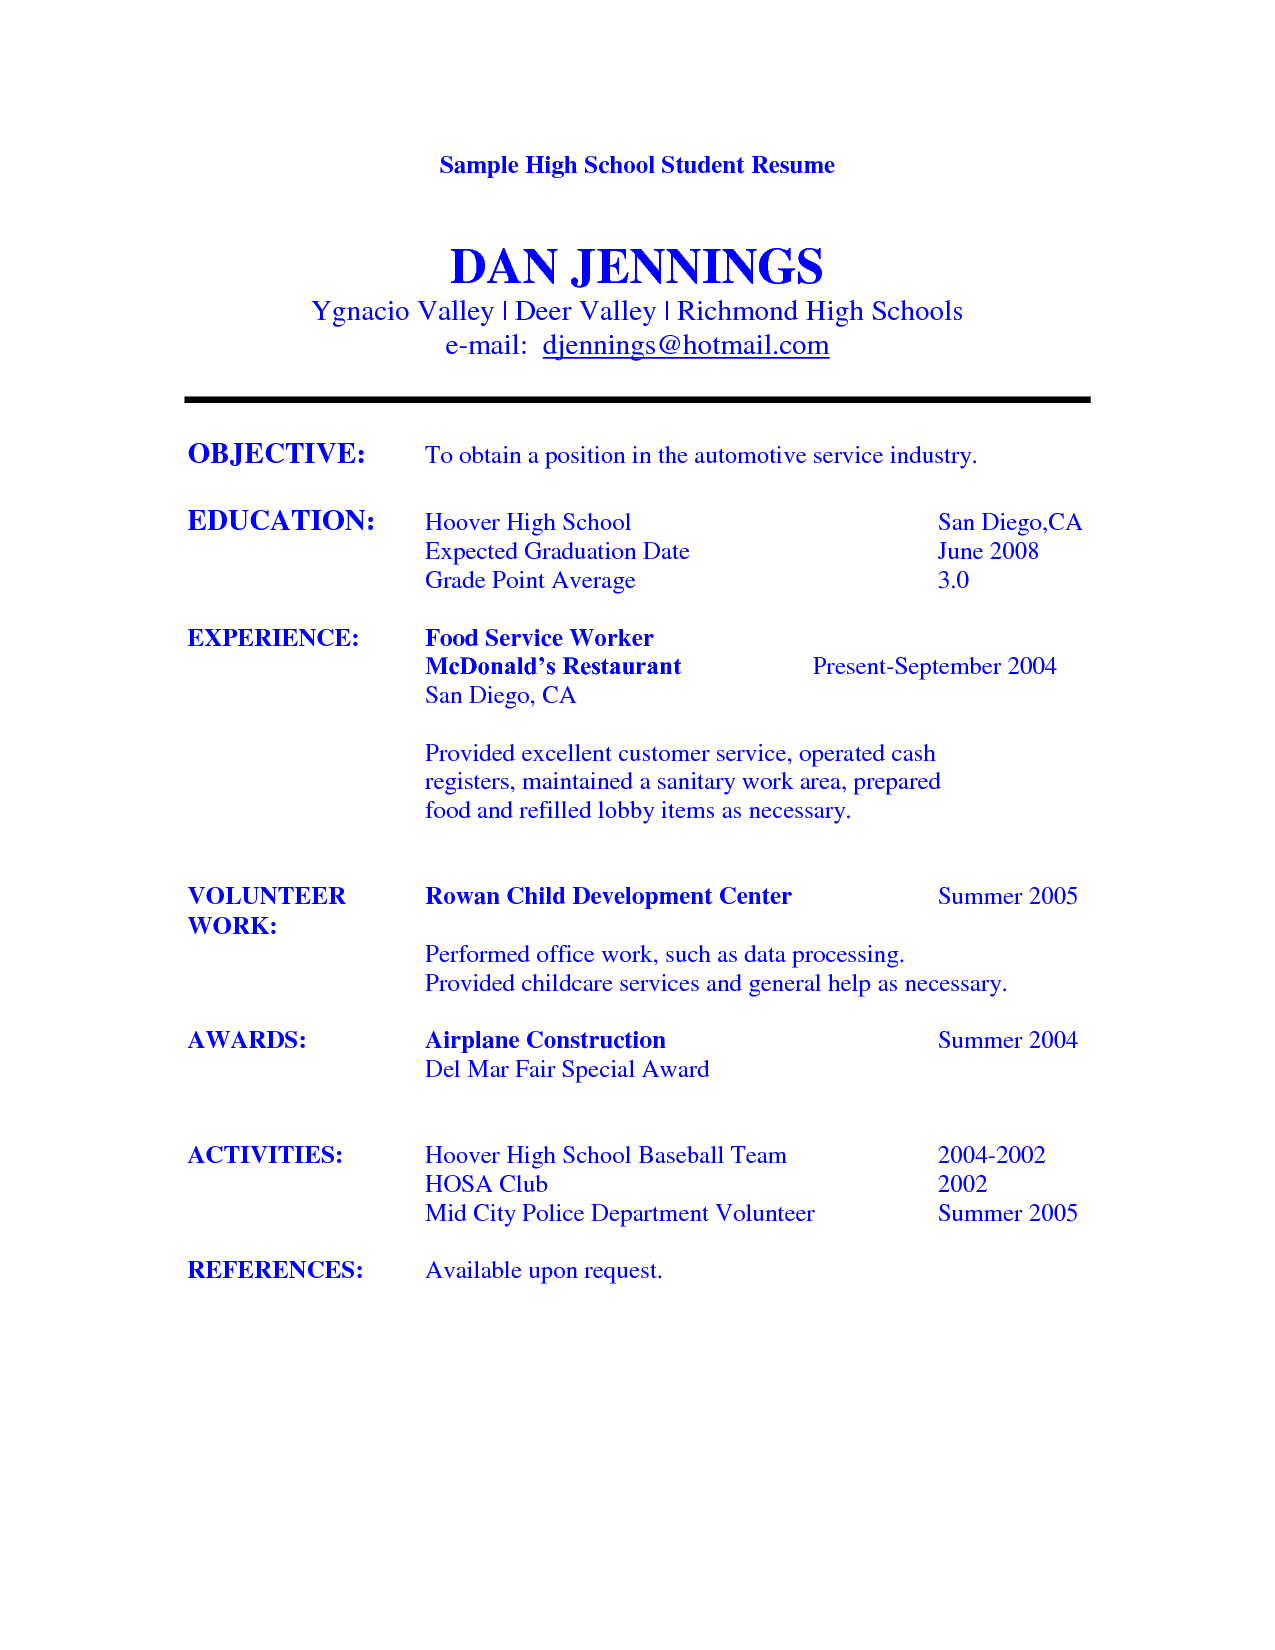 Sample Resume Objective For College Student – High School Resume Objectives